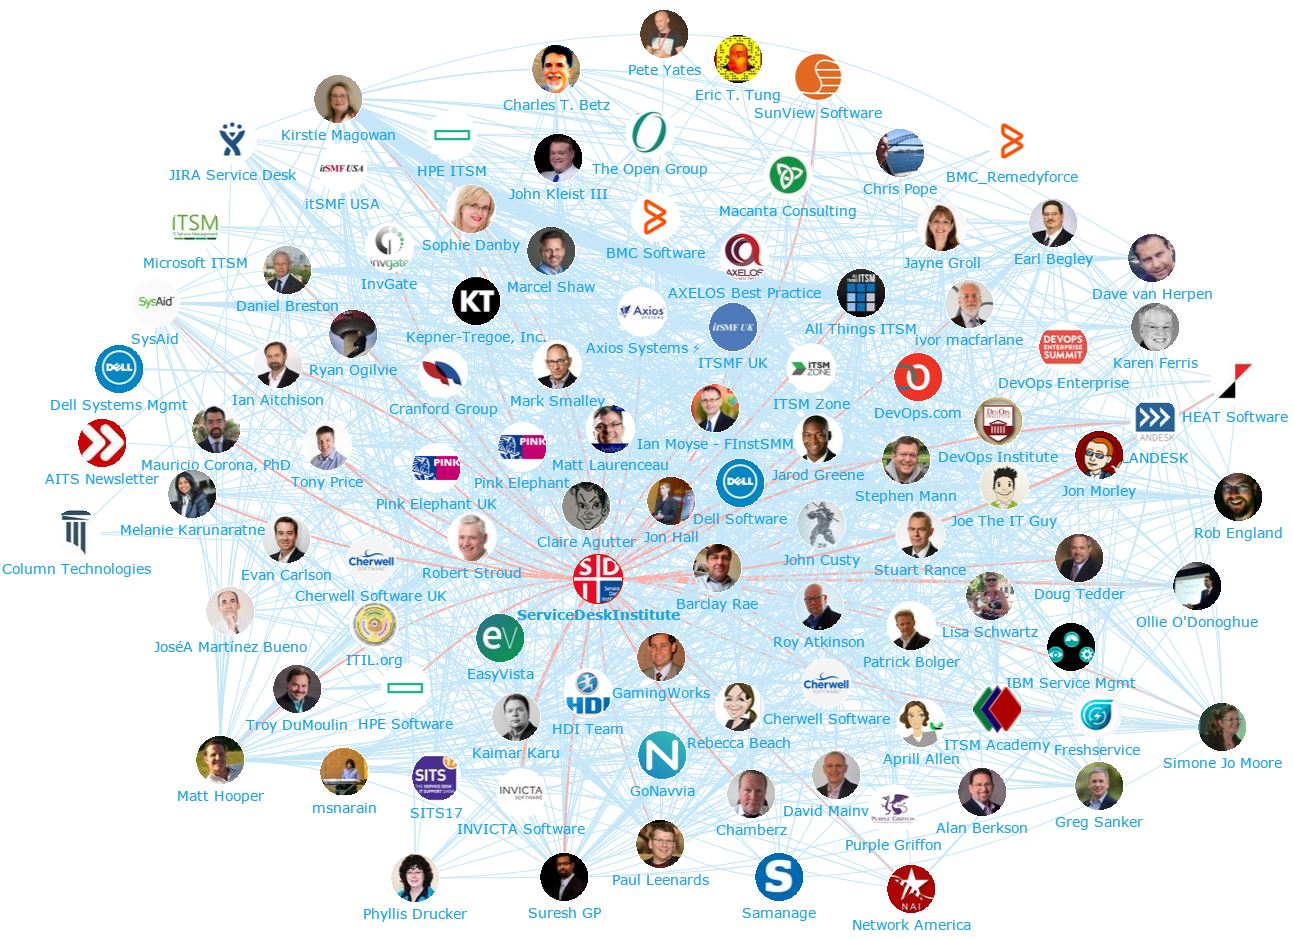 Onalytica - IT Service management TOp 100 Influencers and Brands - Network Map (Service Desk Institute)